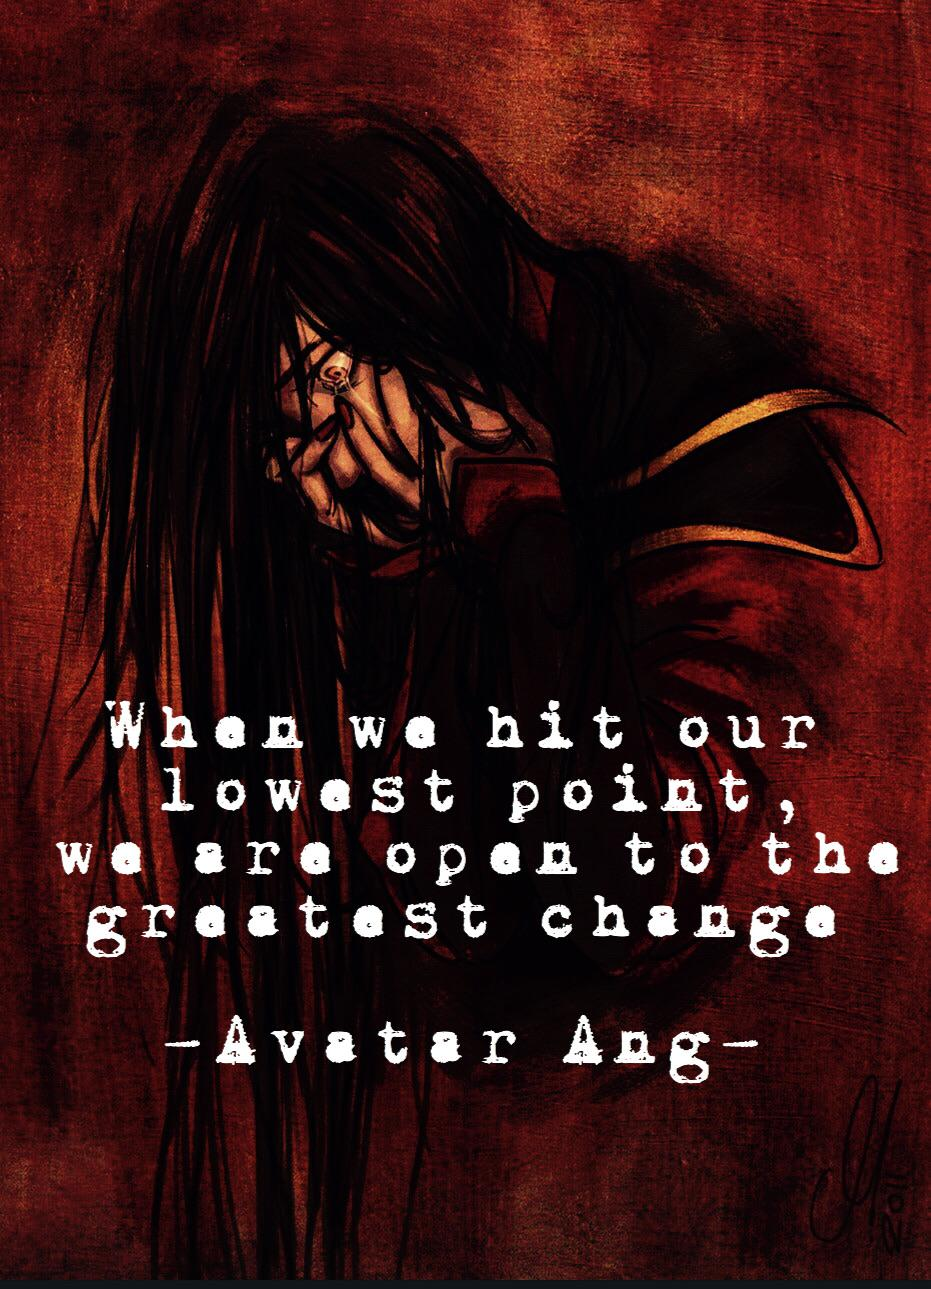 """When we hit our lowest point, we are open to the greatest change"" – Avatar Aang [931 x 1289]"